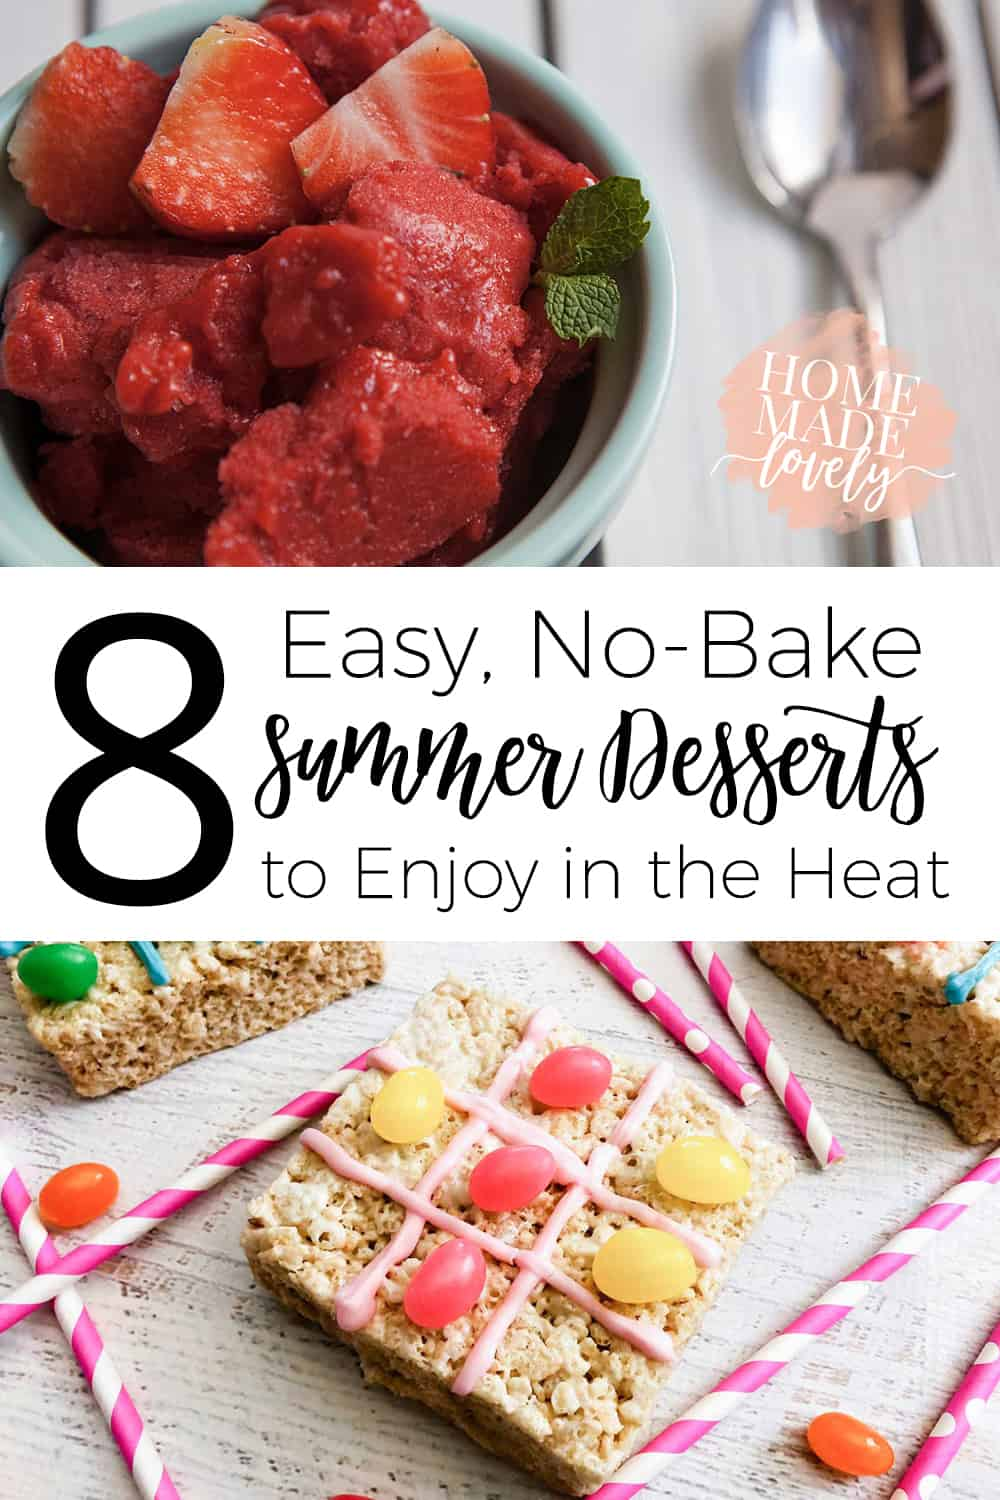 easy, no-bake summer desserts to make in the heat